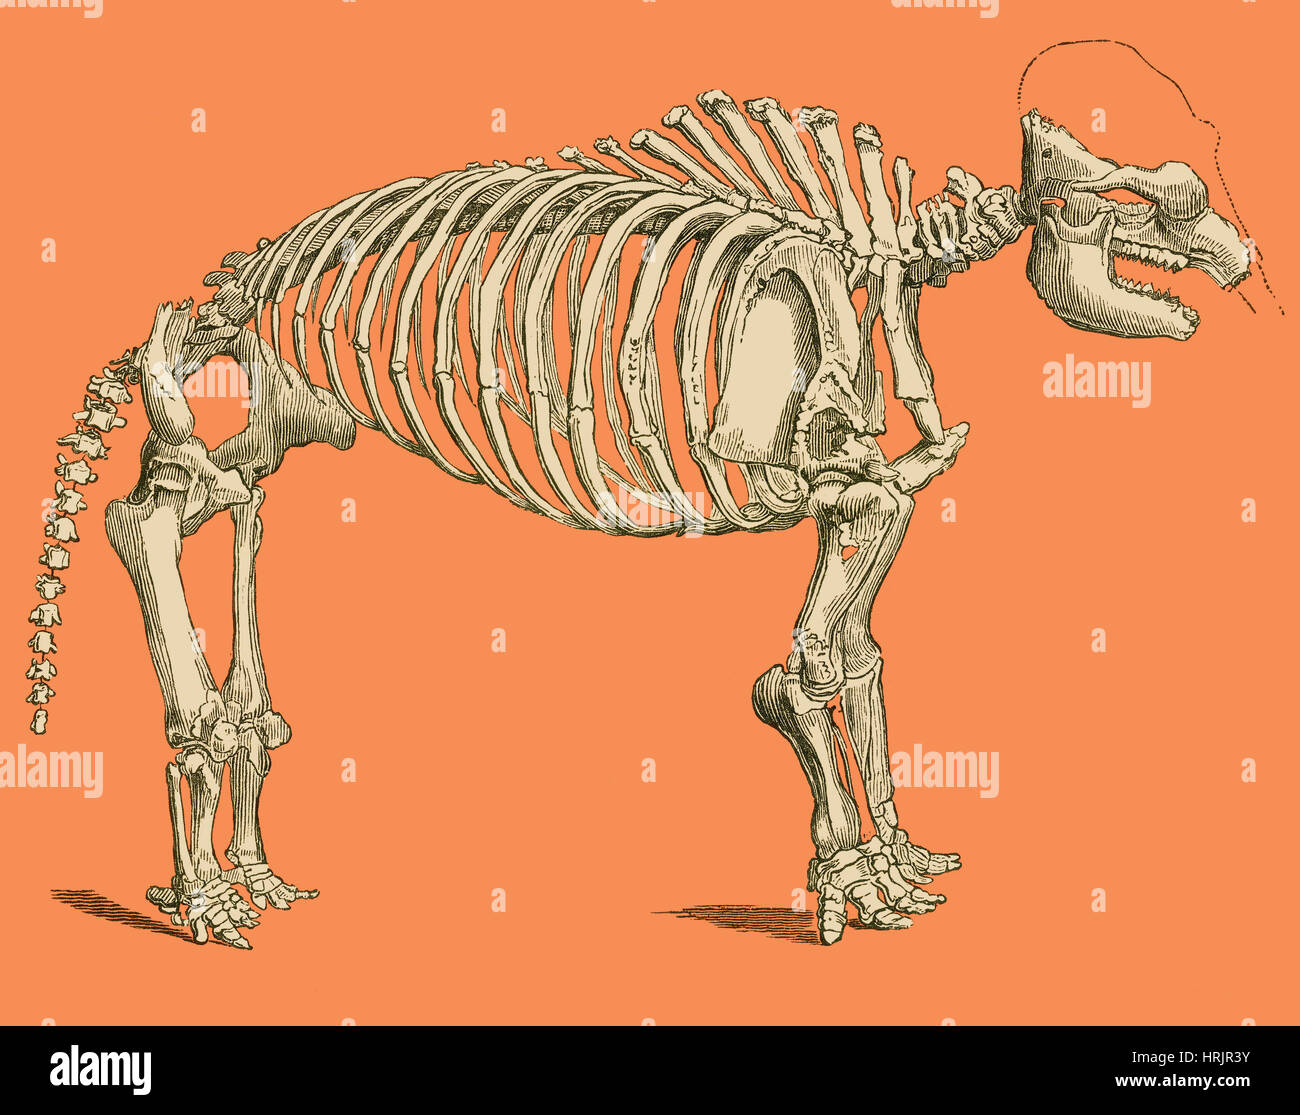 Mastodon Skeleton, Illustration - Stock Image